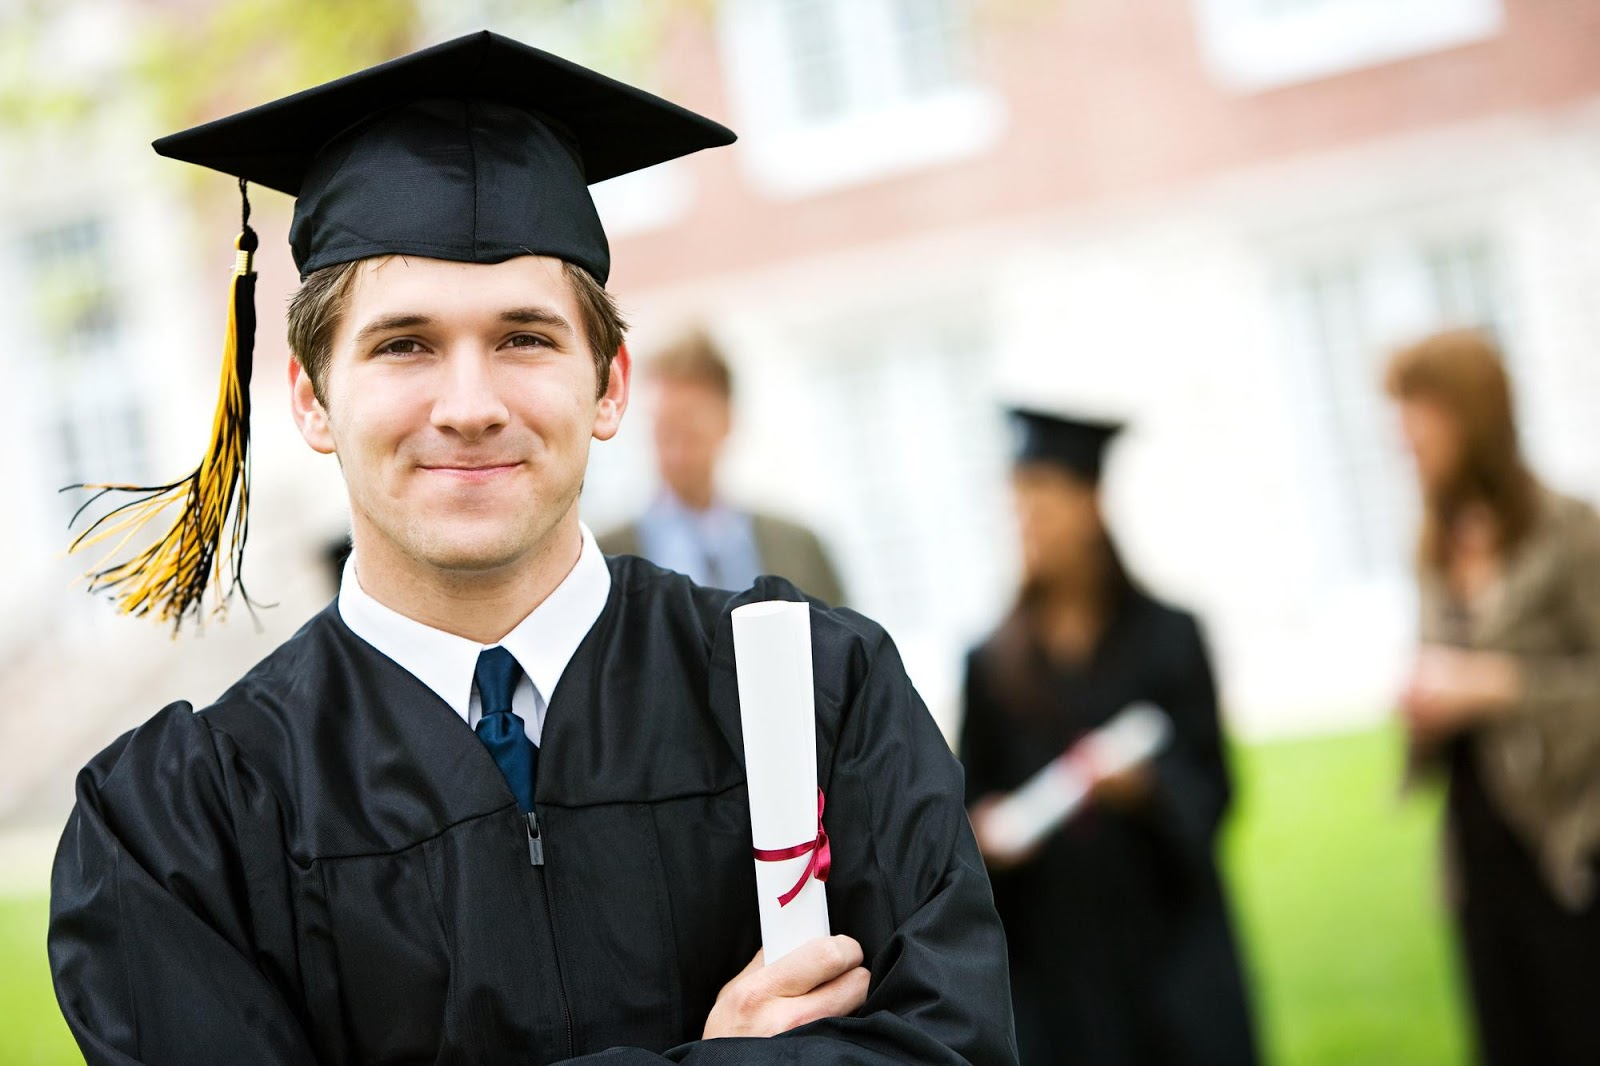 Online Degree vs. Traditional Degree: Do the Differences Matter?